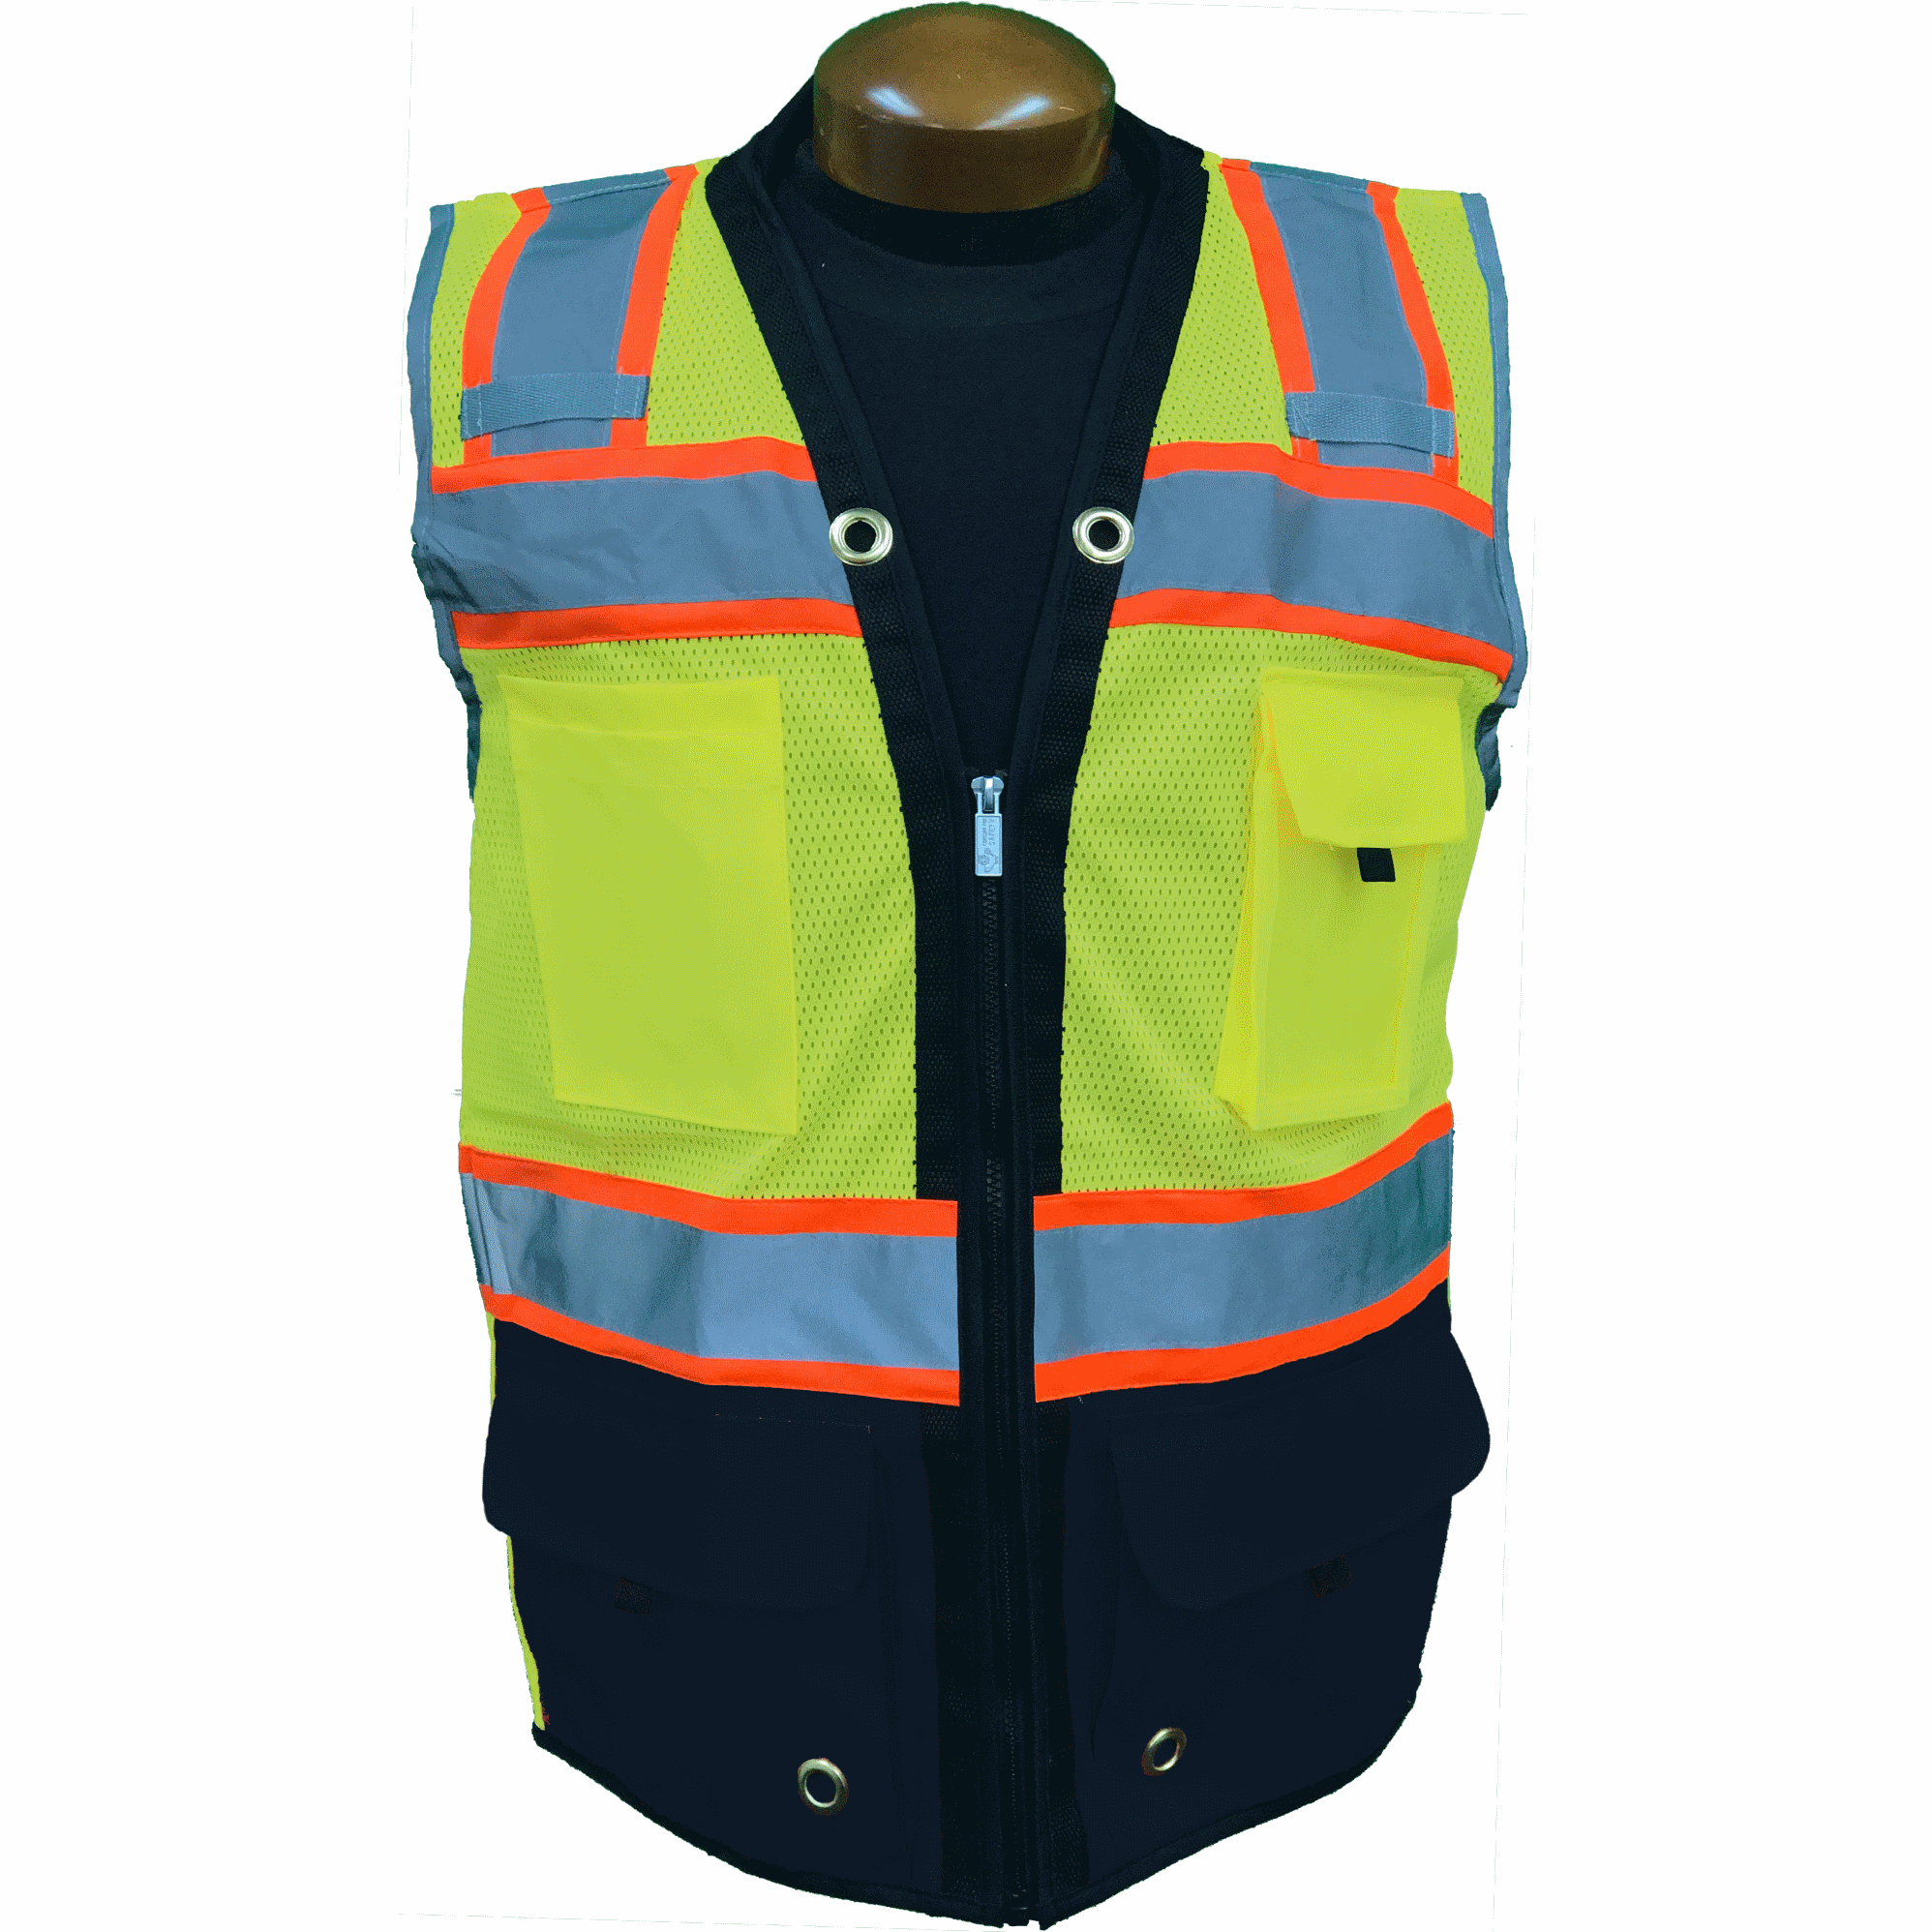 Premium Two Tone Surveyor Vest - Black